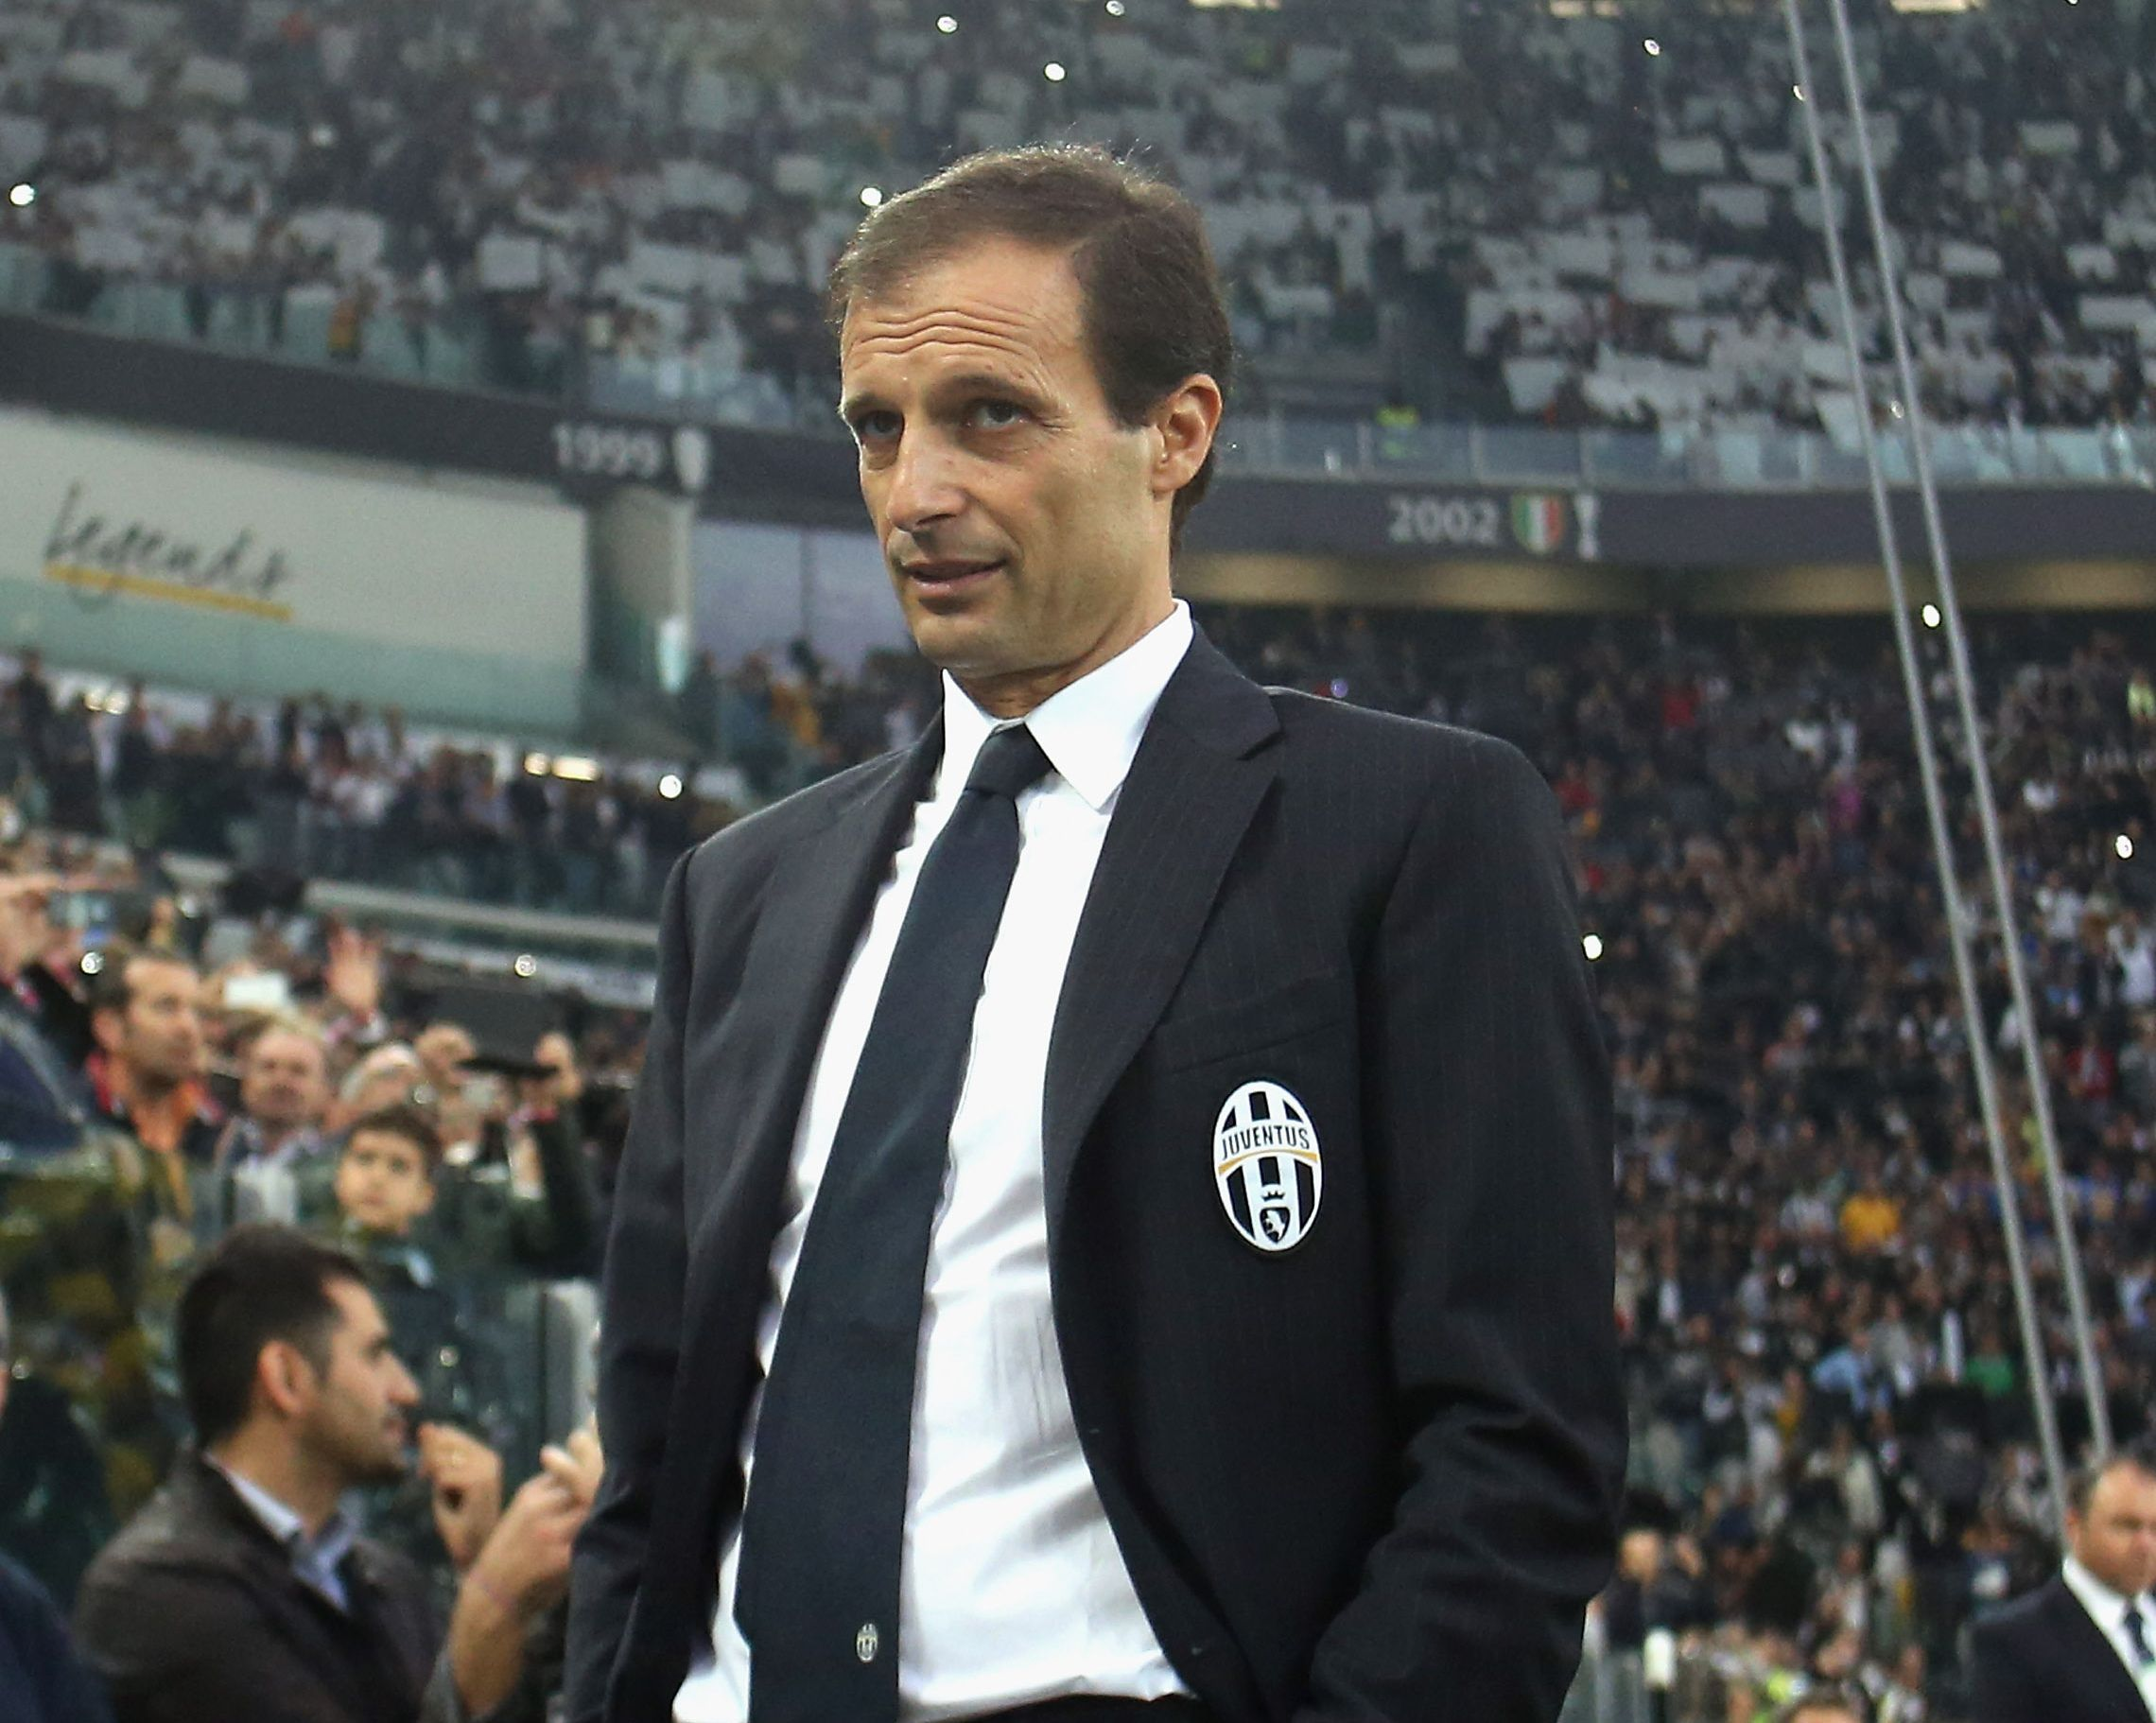 TURIN, ITALY - OCTOBER 05: Head coach of Juventus Massimiliano Allegri looks on during the Serie A match between Juventus FC and AS Roma at Juventus Arena on October 5, 2014 in Turin, Italy. (Photo by Maurizio Lagana/Getty Images)